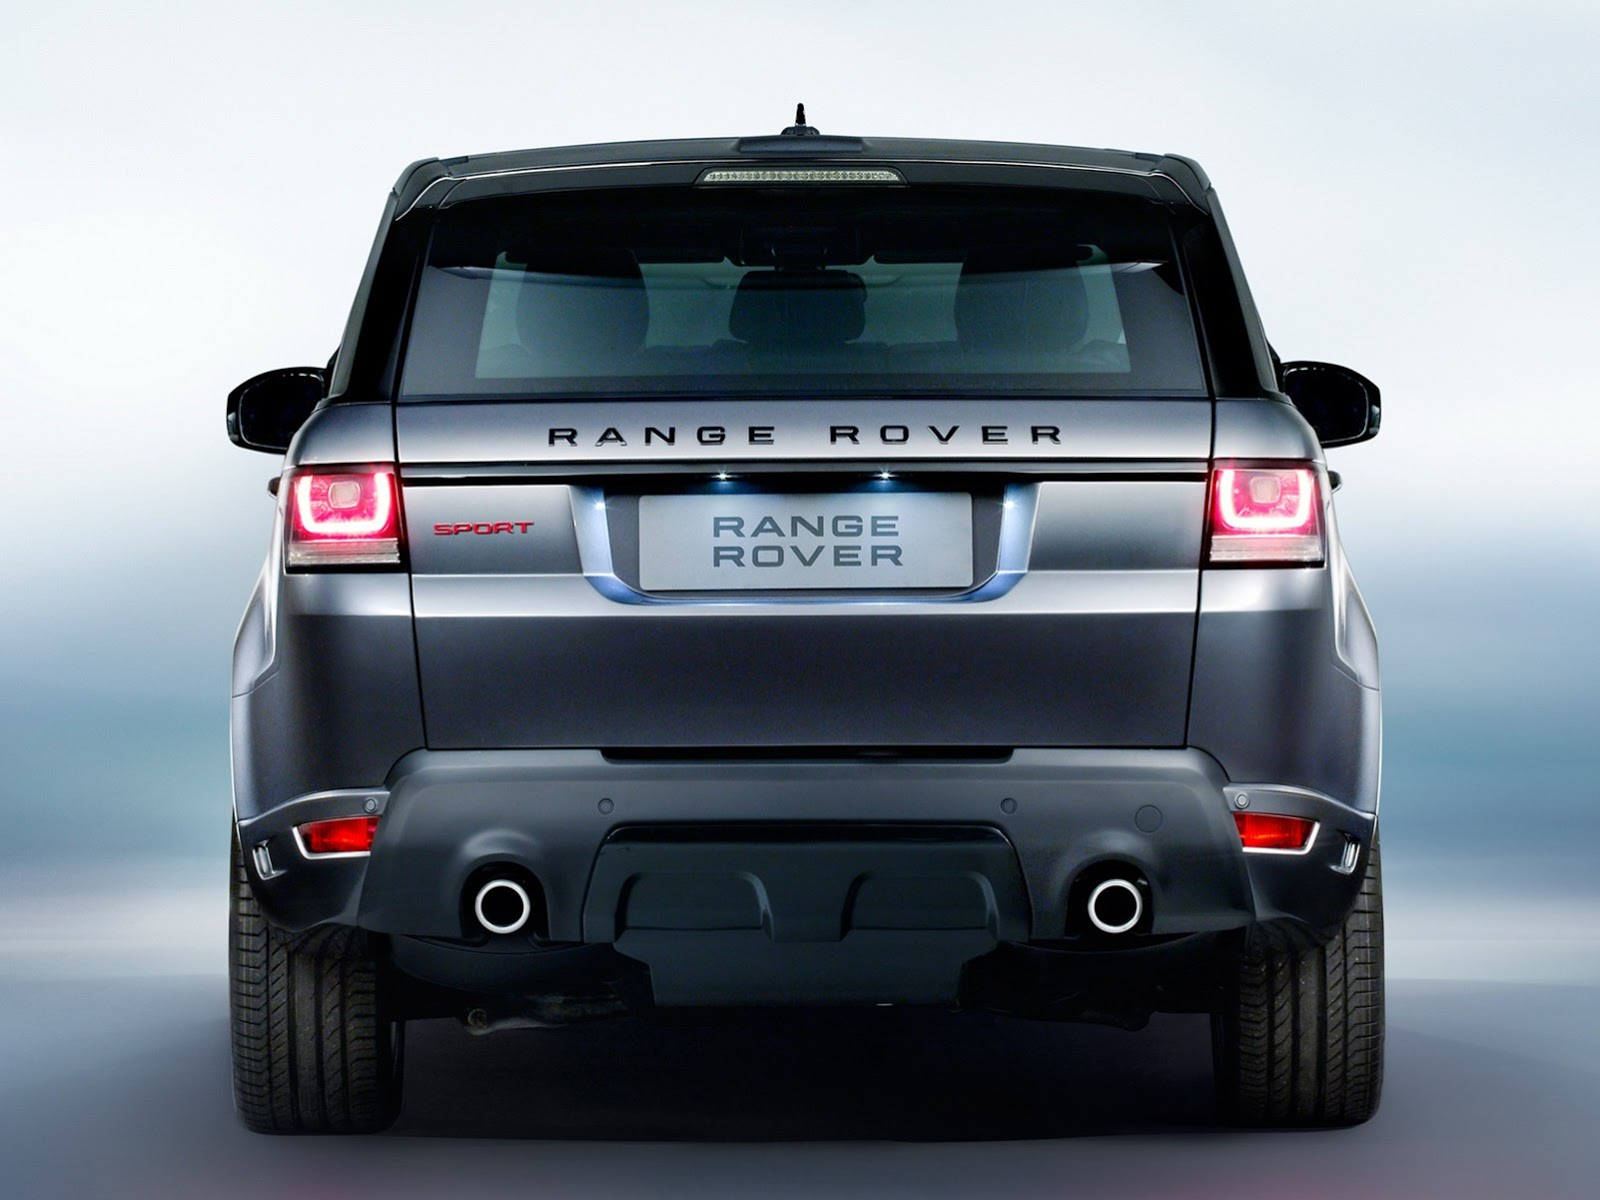 2014 range rover sport photo gallery car gallery premium luxury suvs autocar india. Black Bedroom Furniture Sets. Home Design Ideas